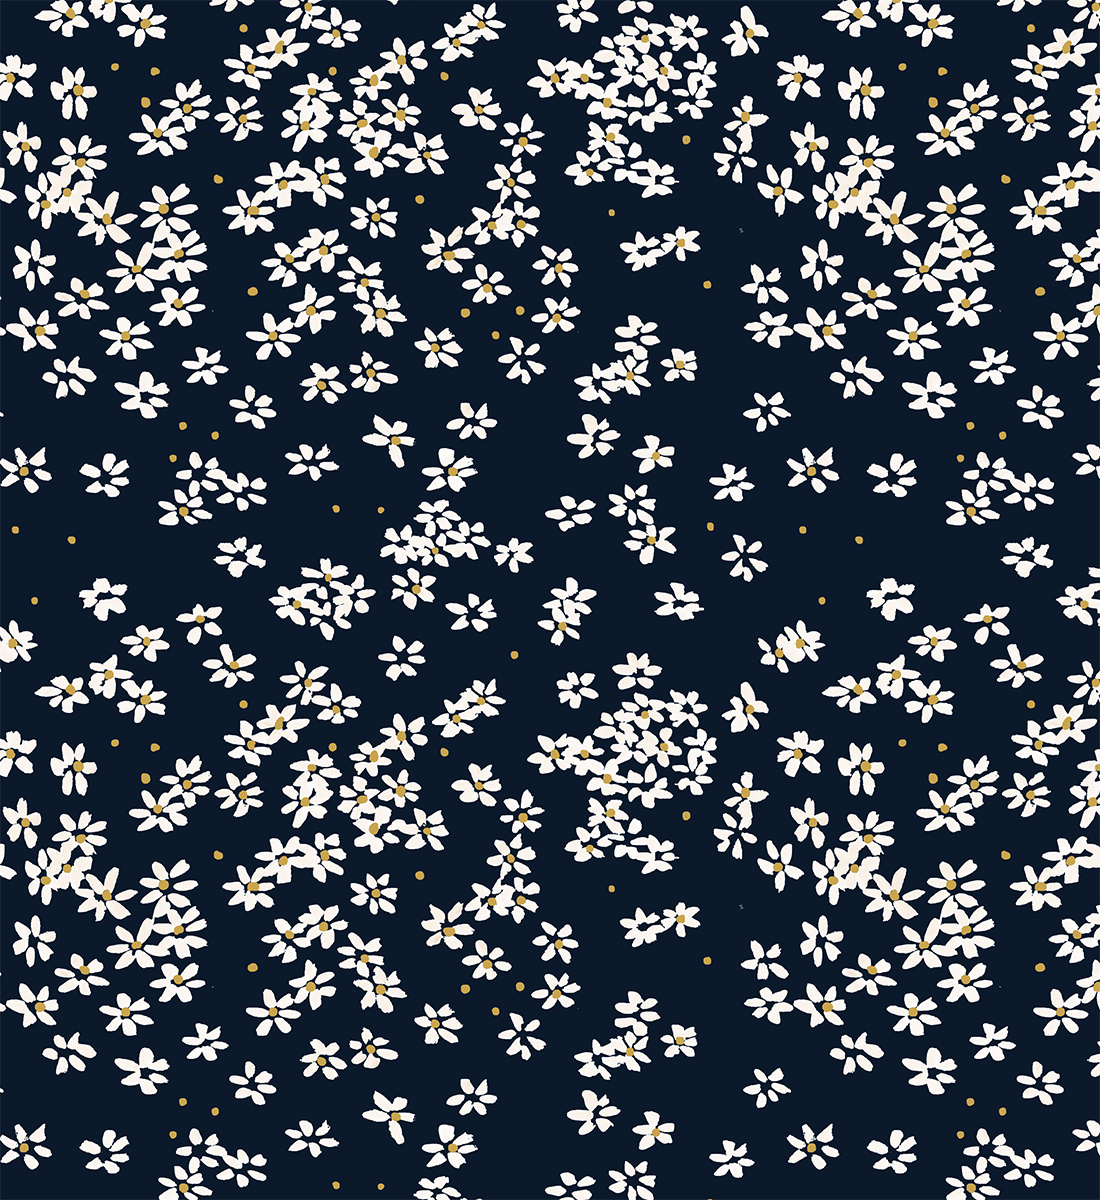 print MARGUERITES - all over.jpg